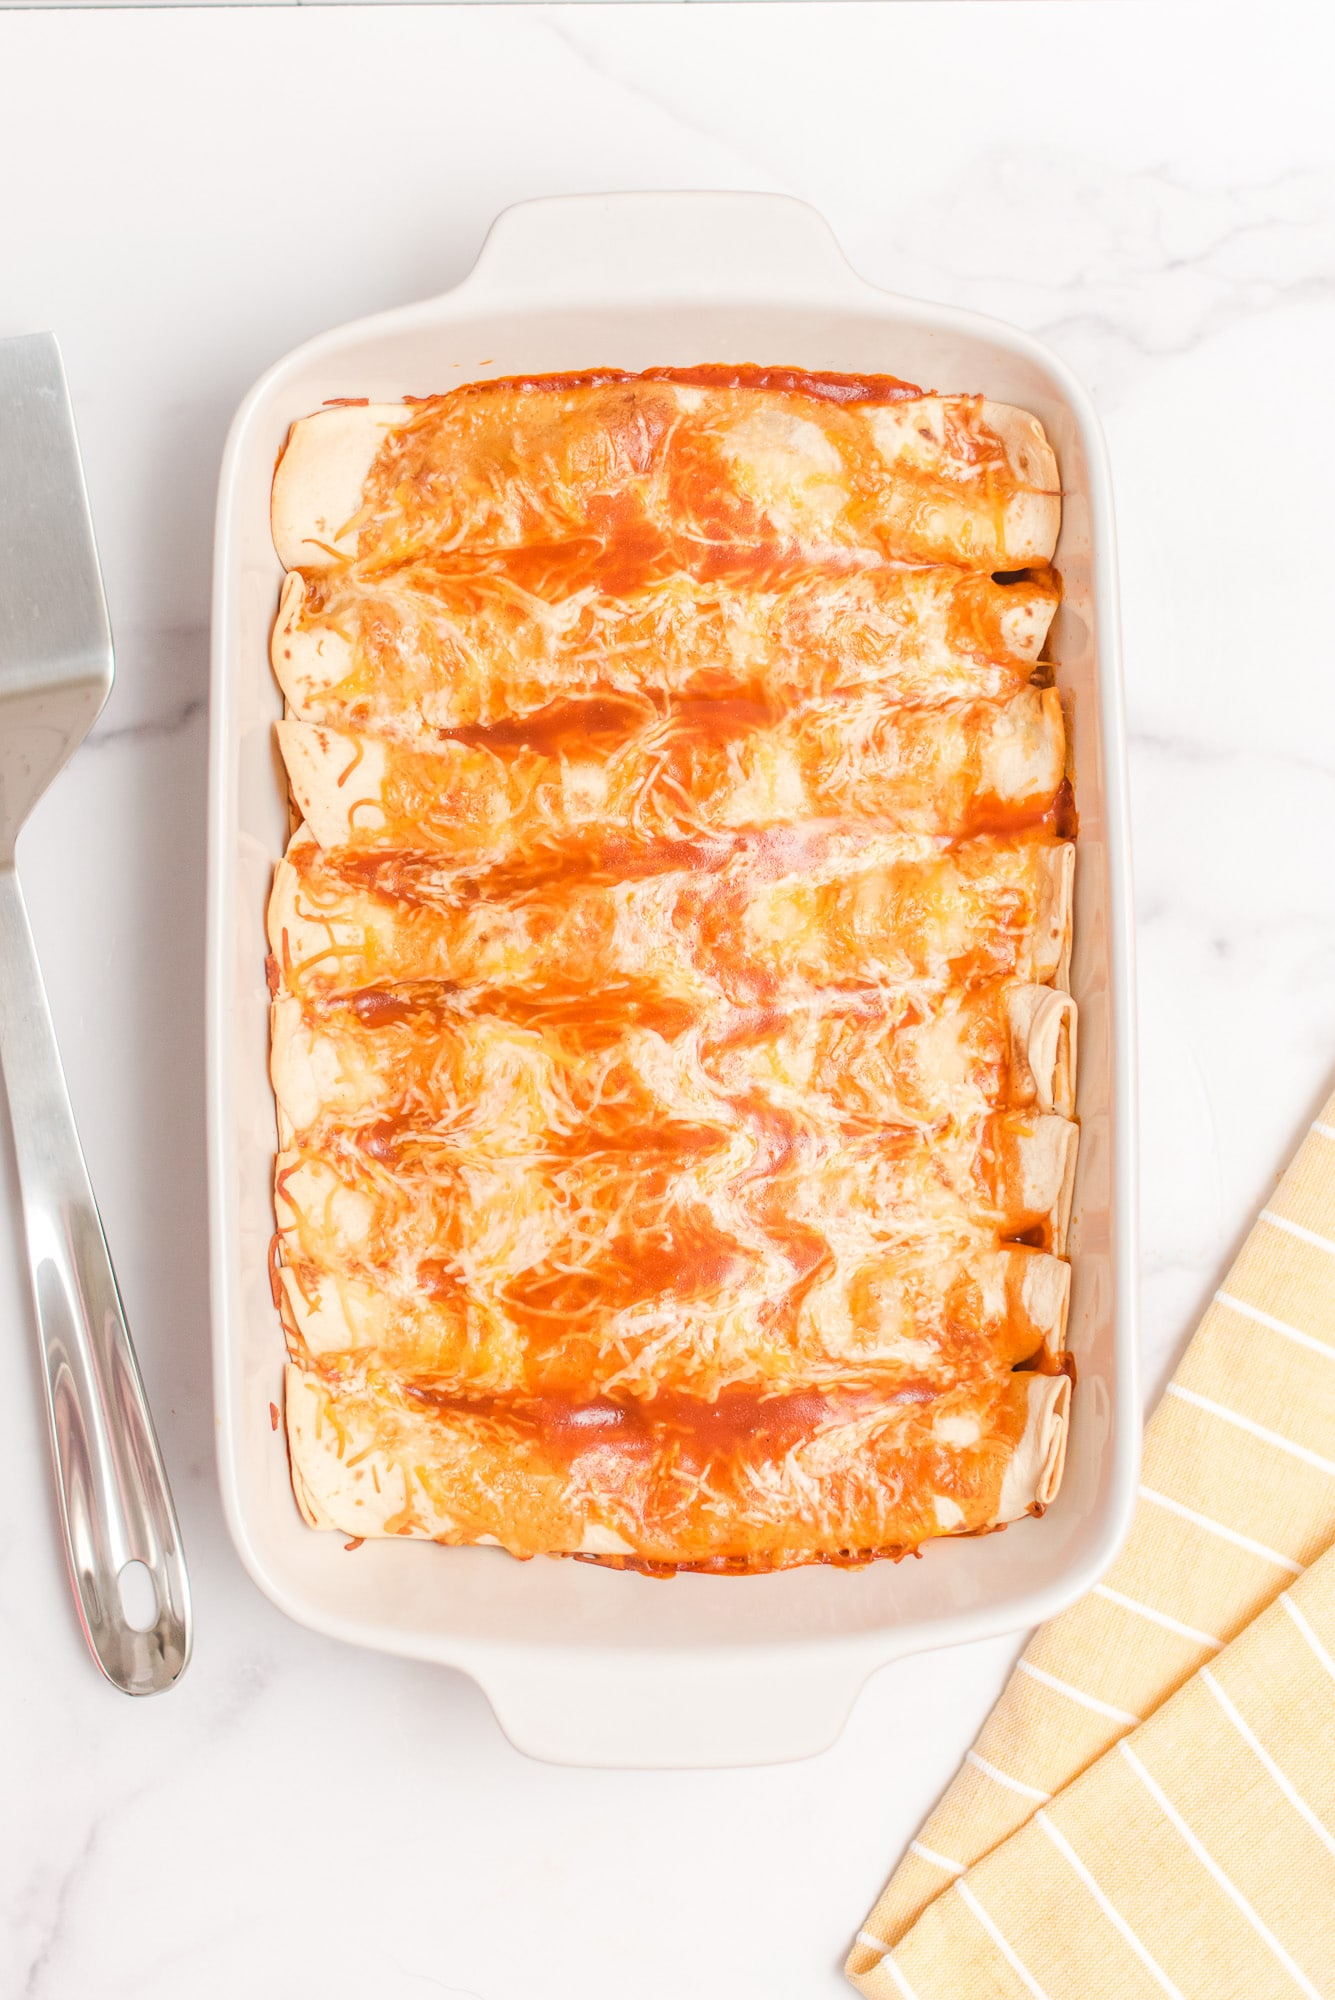 enchiladas in baking dish with some cheese